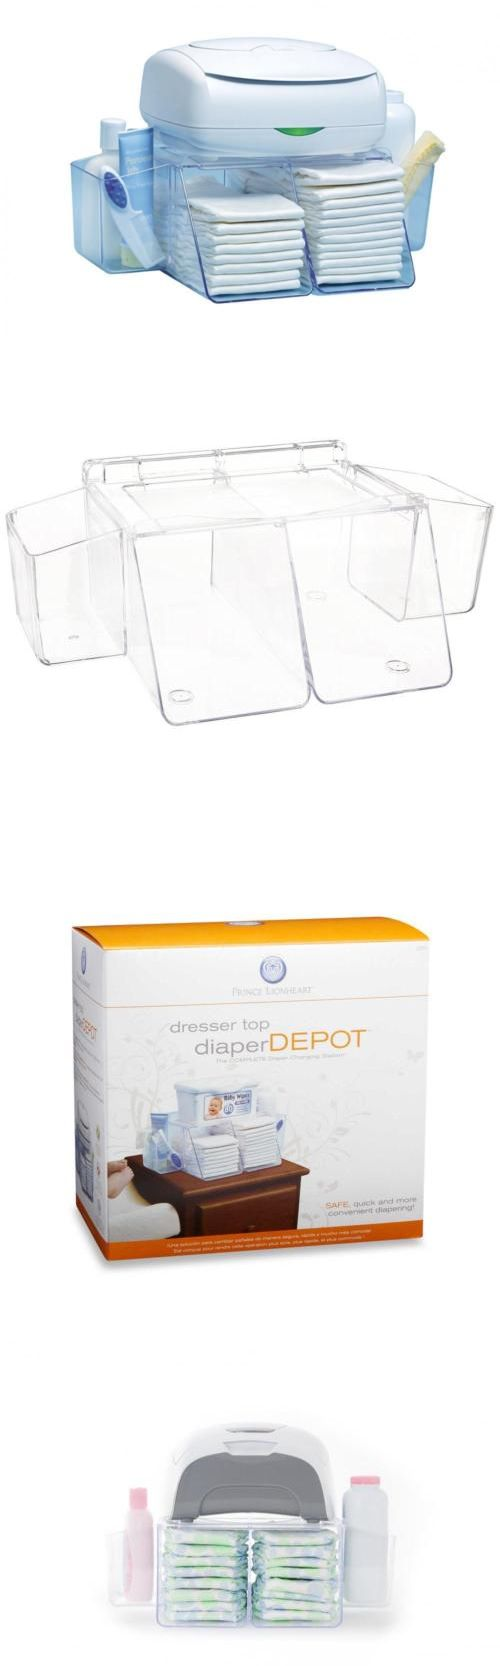 Dresser Top Diaper Depot Stackers 134758 Pinterest Diapers And